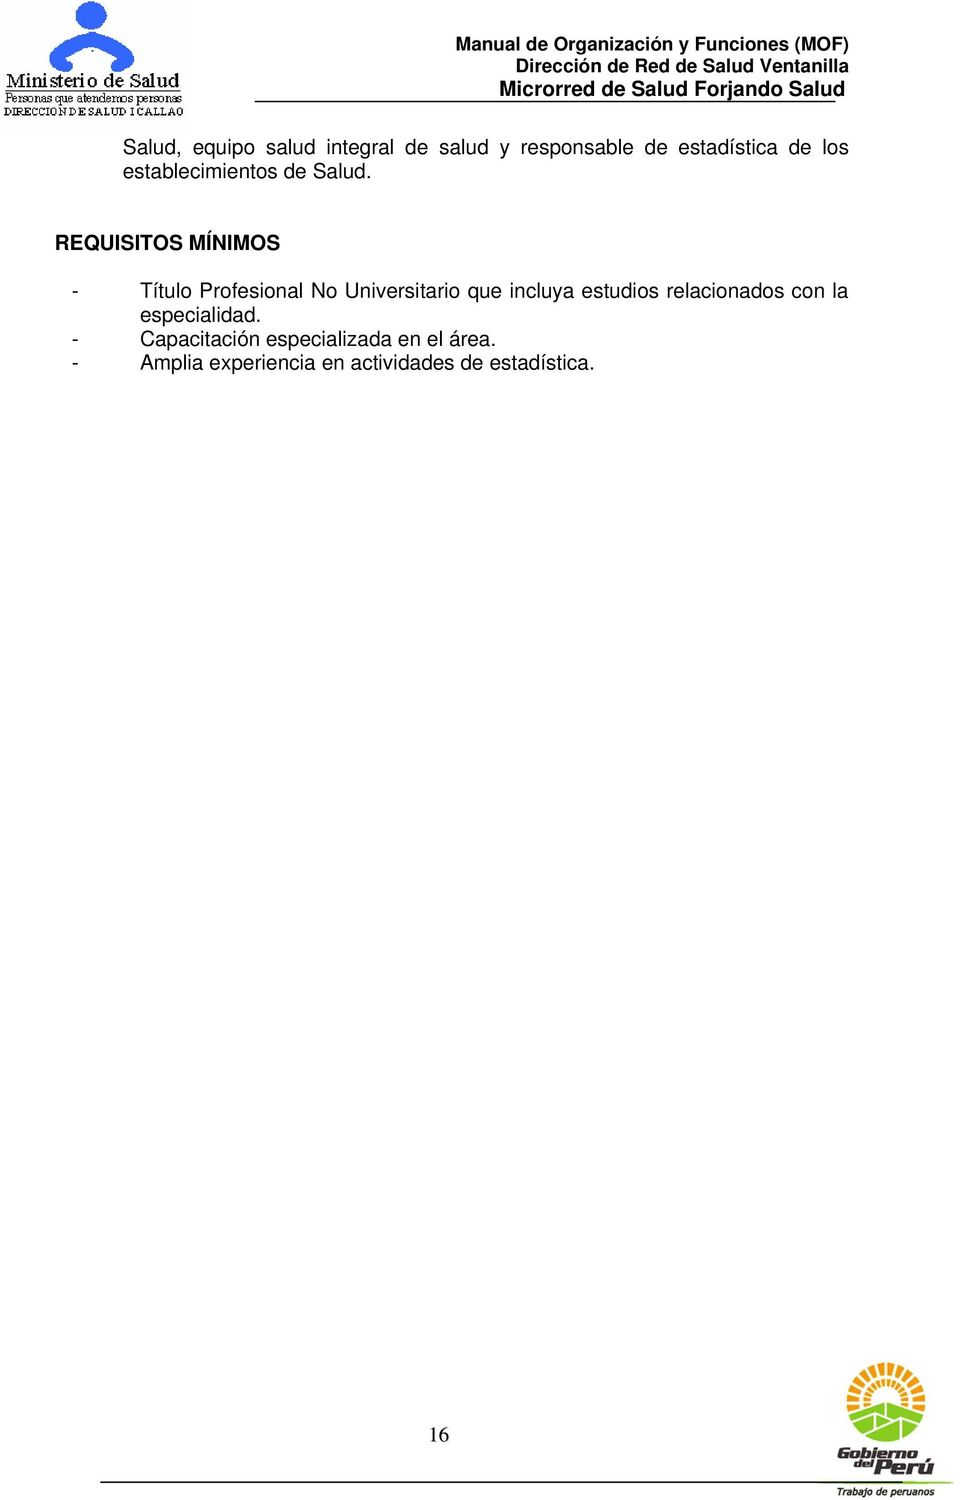 REQUISITOS MÍNIMOS - Título Profesional No Universitario que incluya